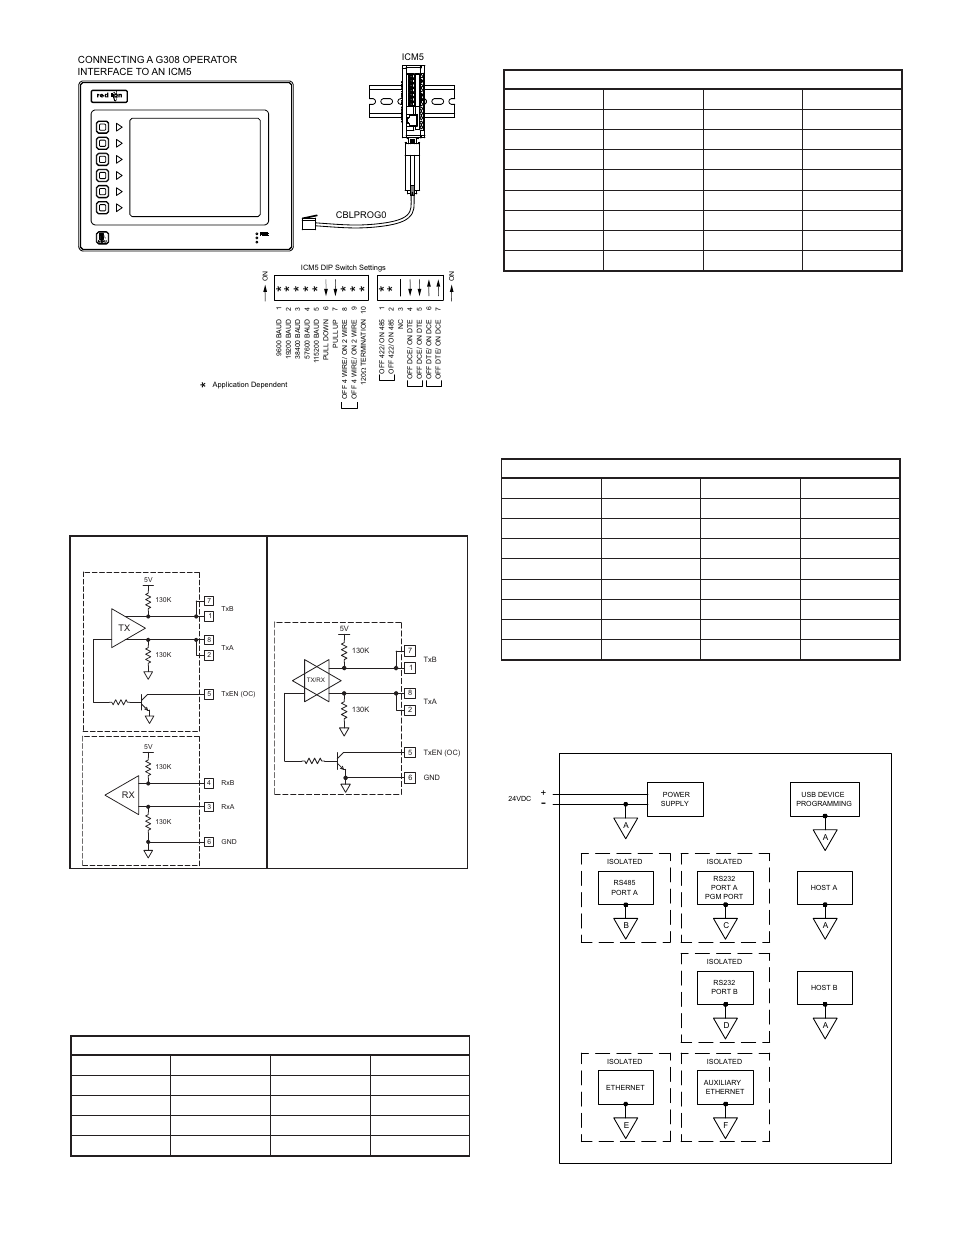 Rs485 Diagram 2wire Wiring Library Rs 485 2 Wire Examples Of Connections Dh485 Communications G3 To Modular Controller